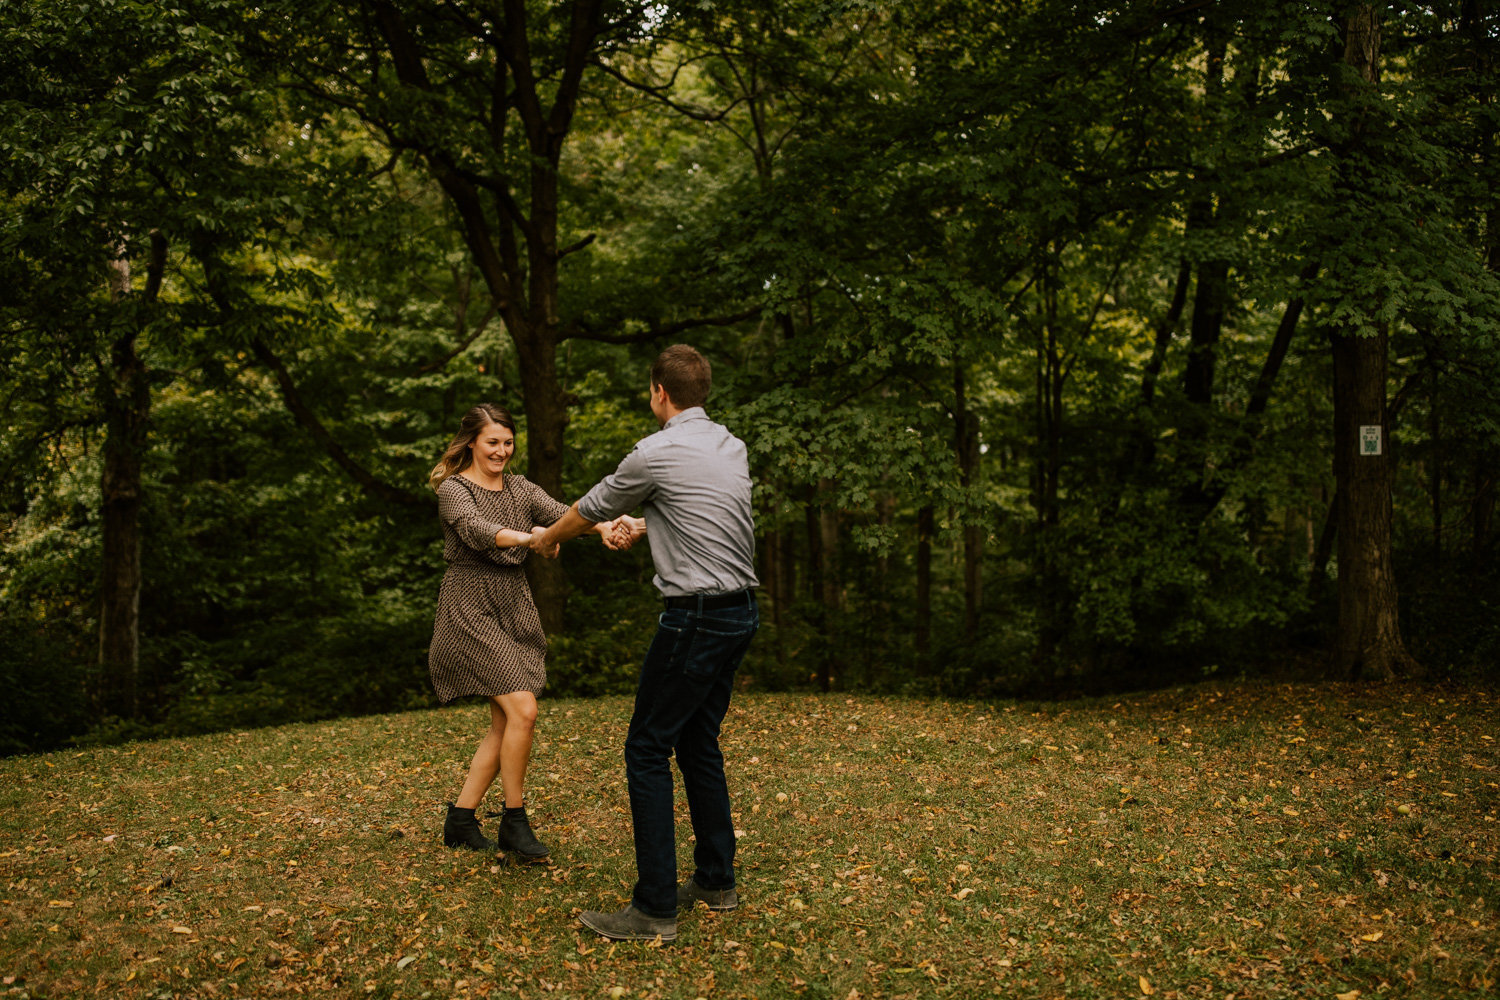 Vibrant-giggly-engagement-session-holliday-park-8